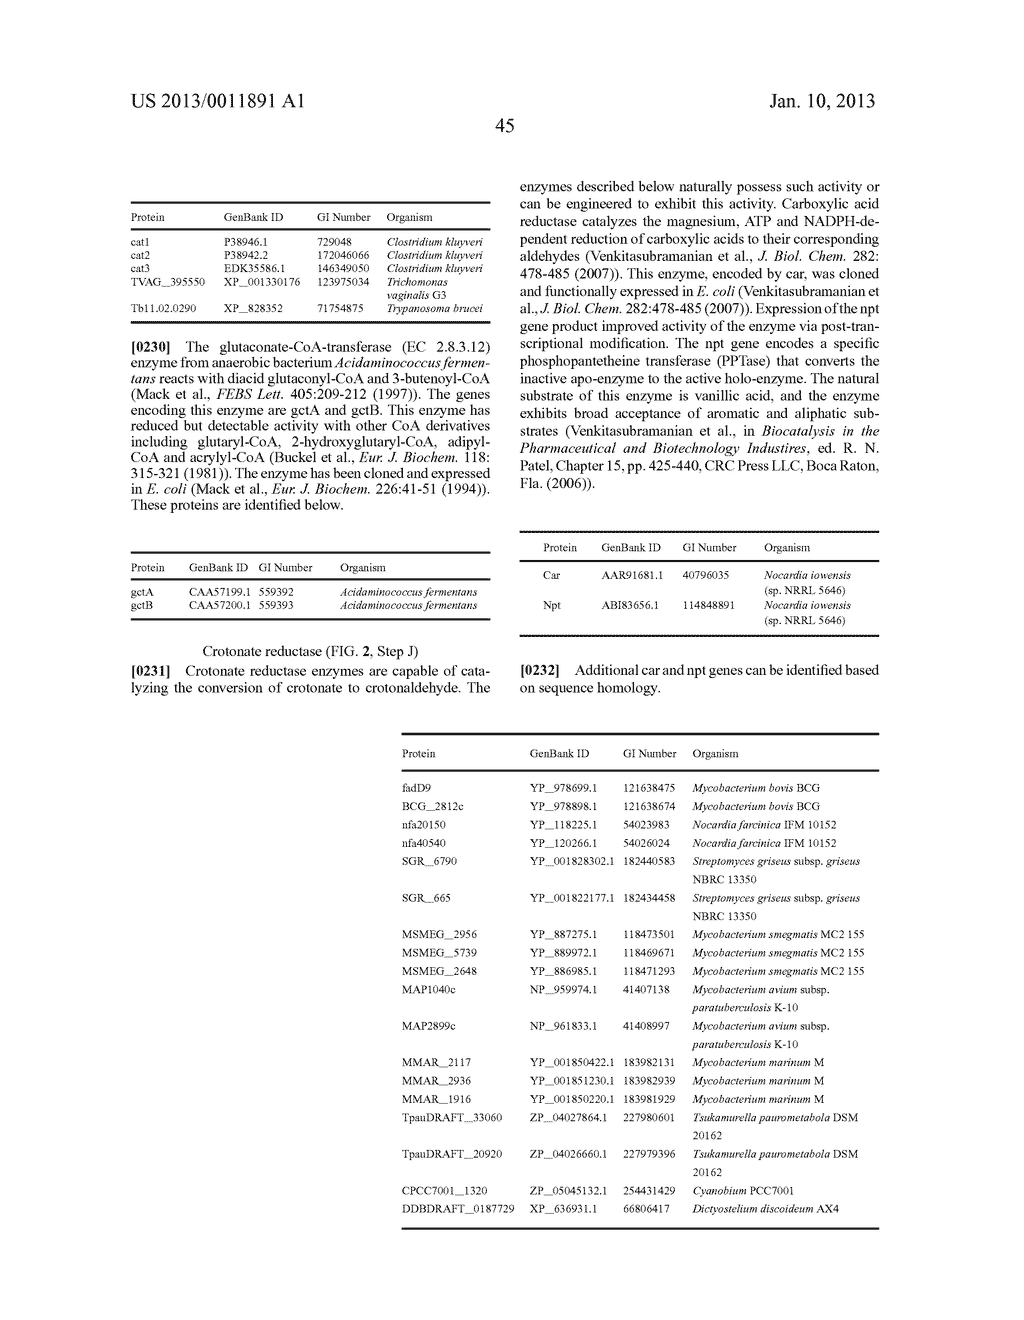 MICROORGANISMS FOR PRODUCING BUTADIENE AND METHODS RELATED THERETO - diagram, schematic, and image 70